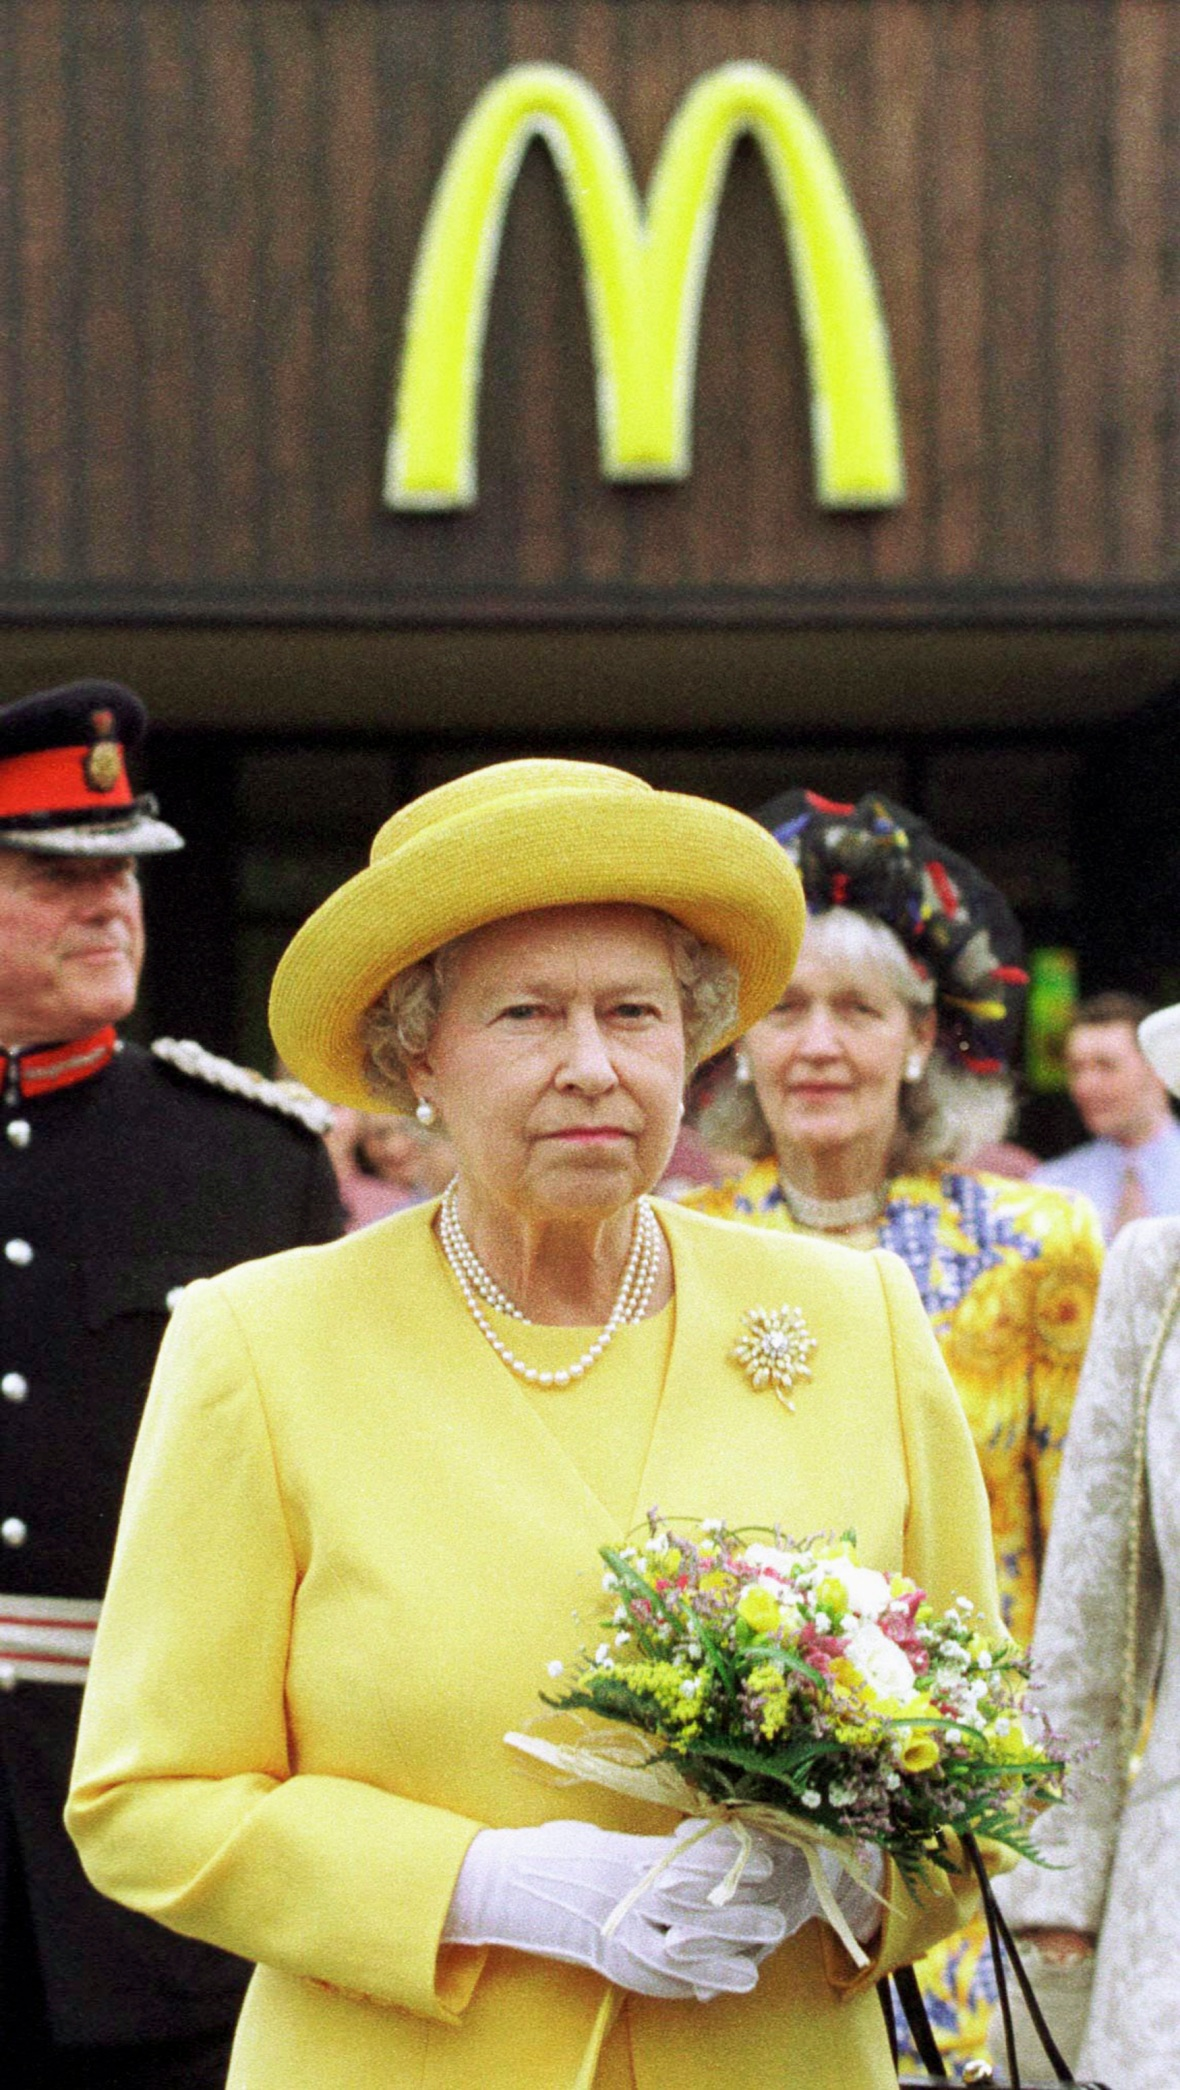 the queen getty images